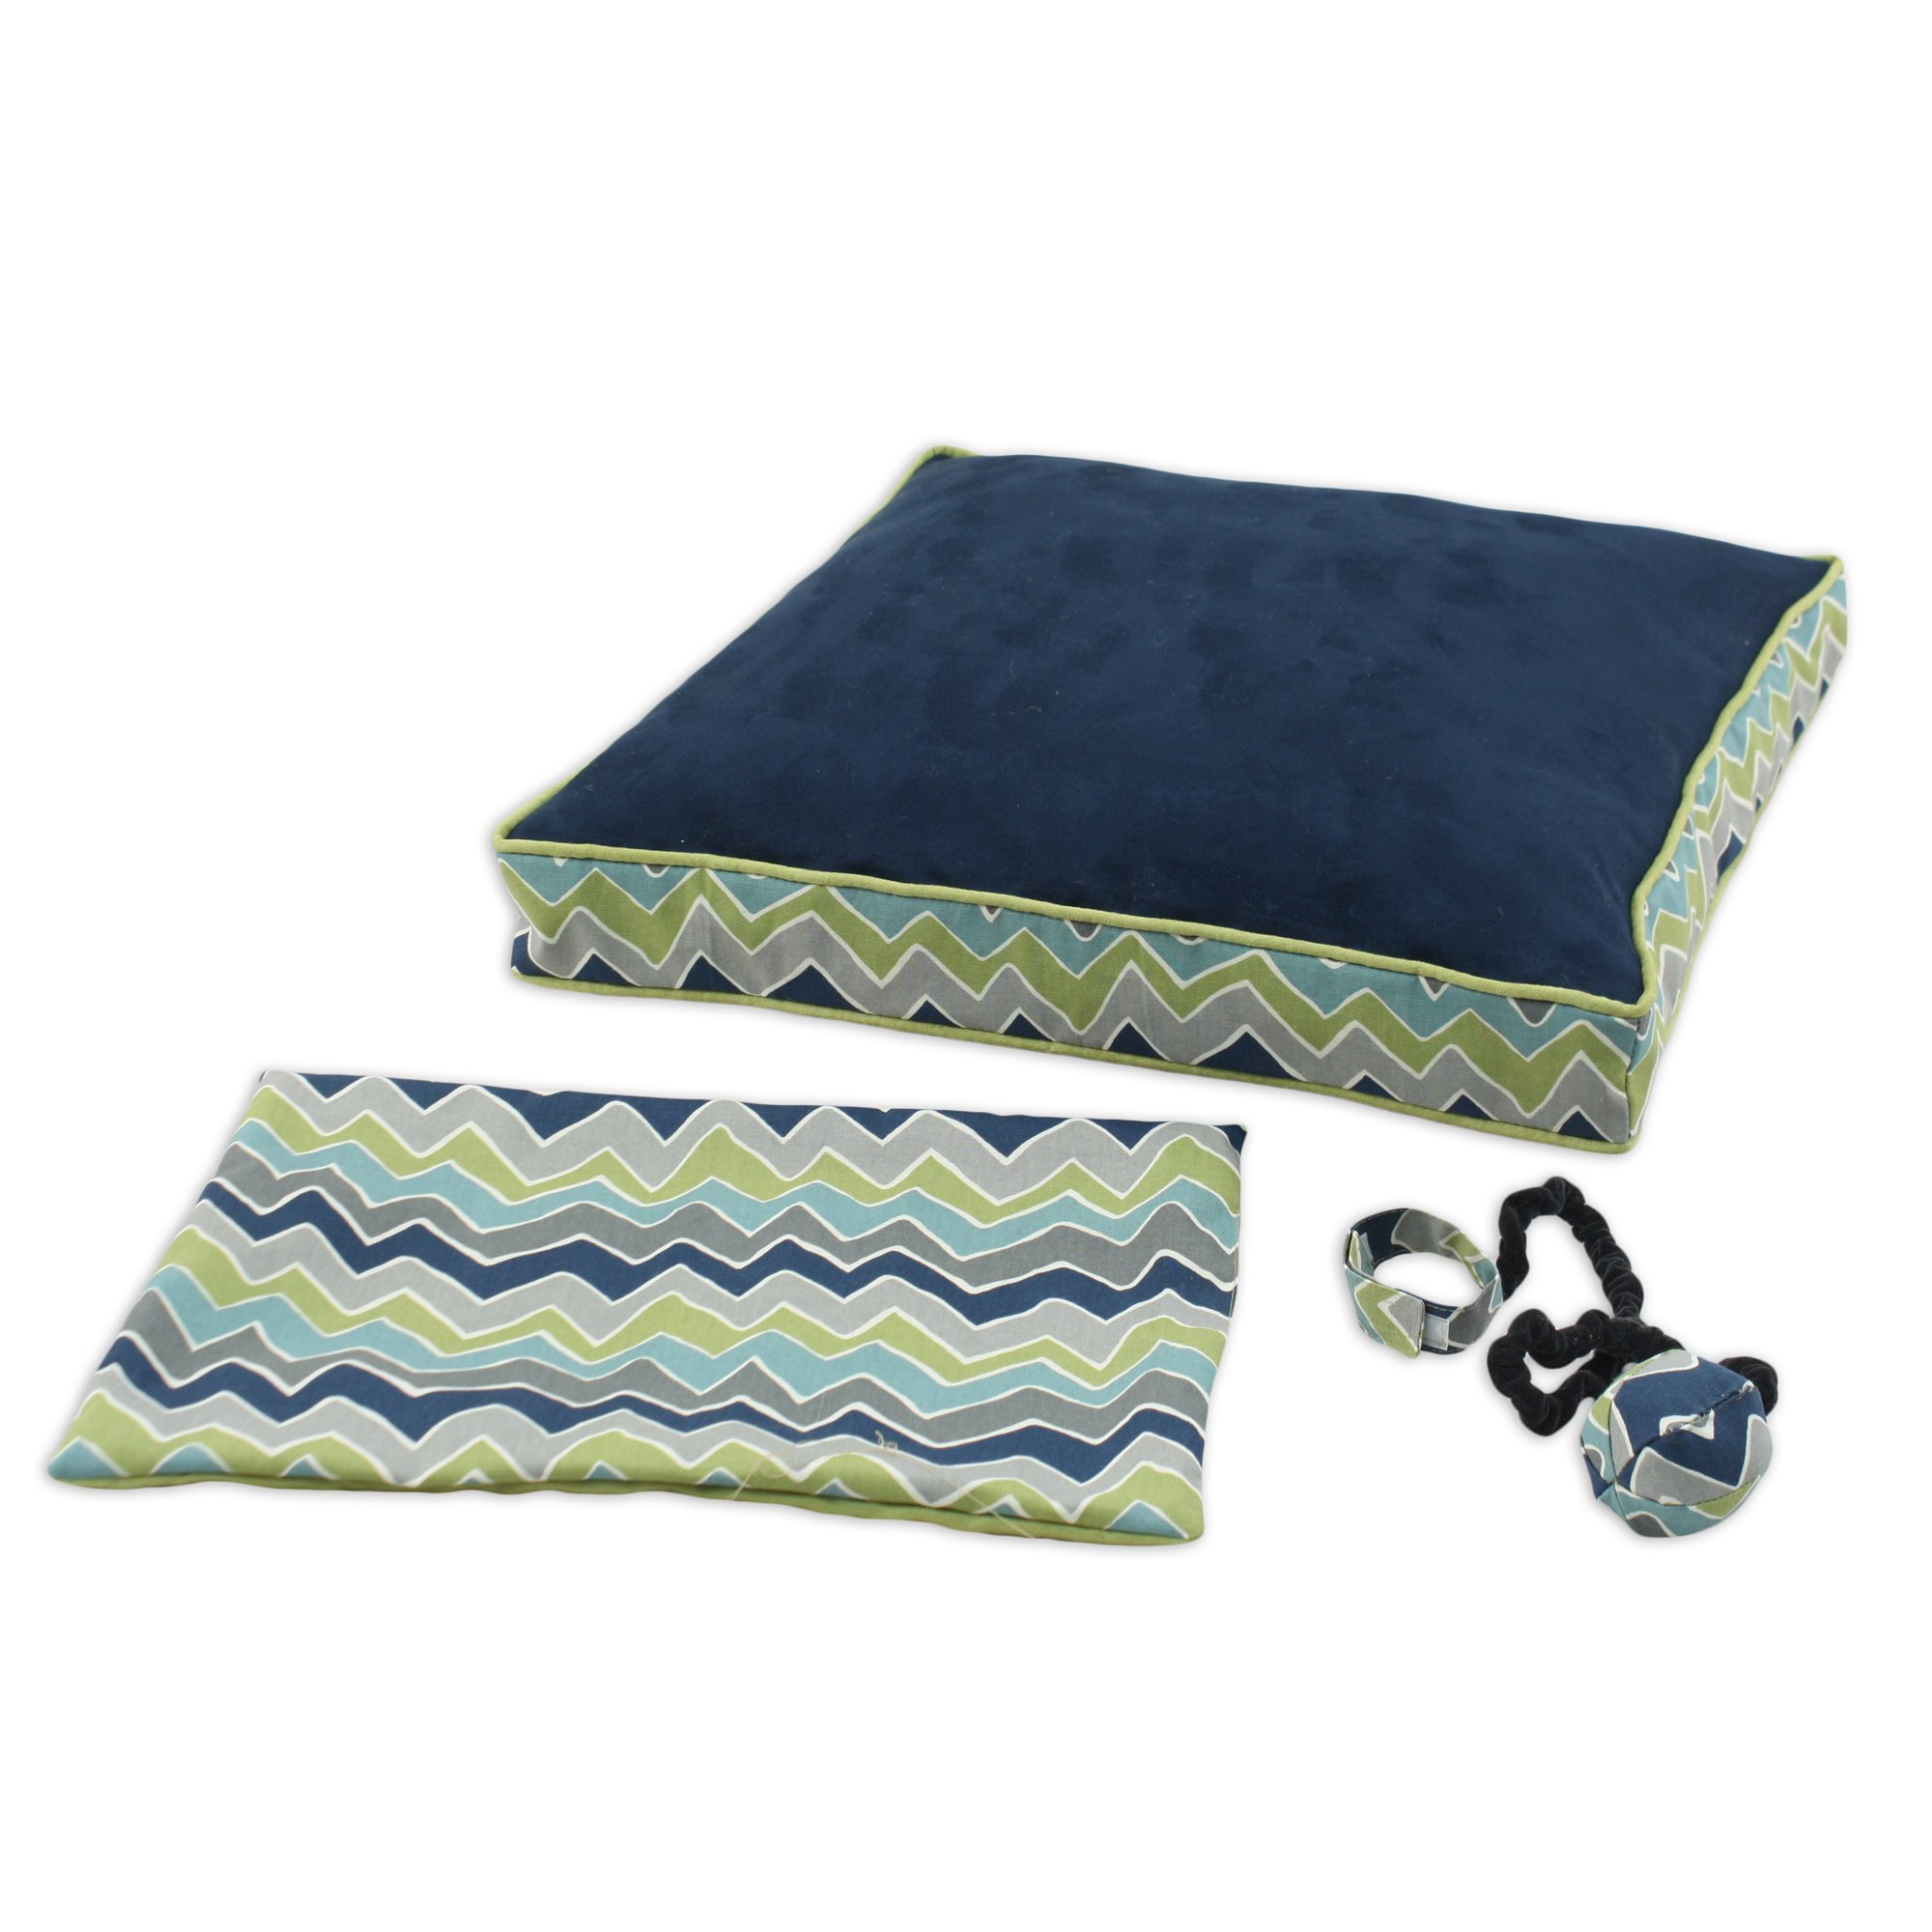 Brite Ideas Living Passion Suede Navy See Saw 23 by 23-Inch Boxed Pet Bed with Versatile Cover and Wrist Toy, Set of 3